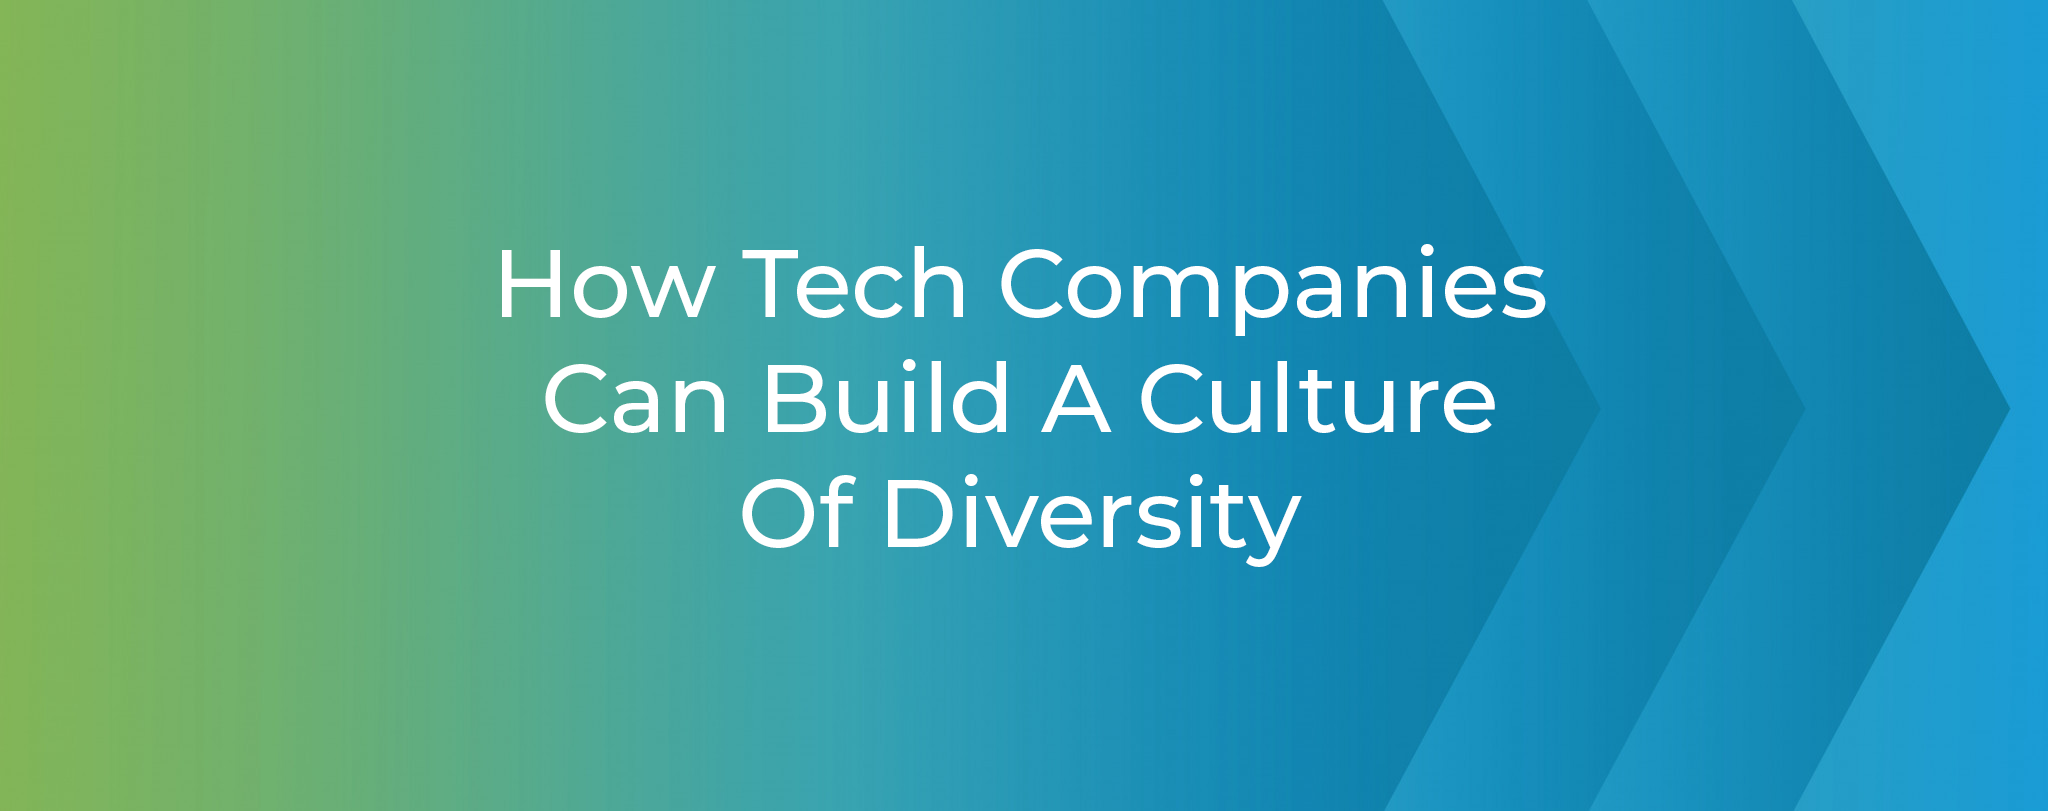 How Tech Companies Can Build A Culture Of Diversity